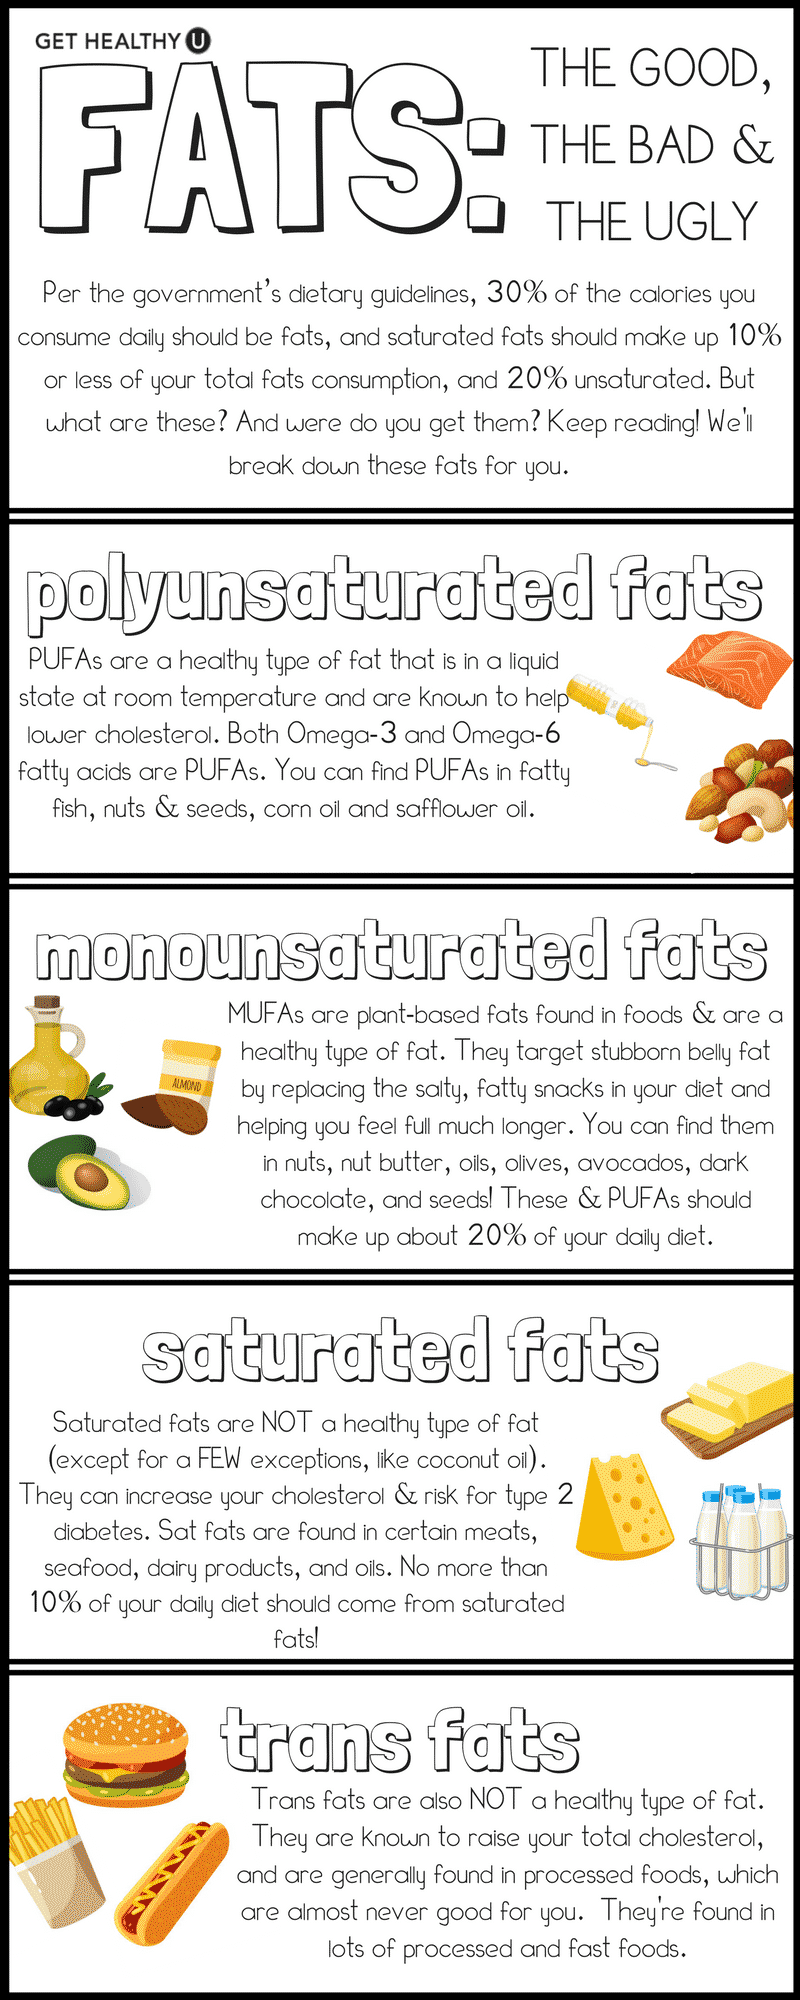 Check out this graphic we designed breaking down the differences between Monounsaturated fats, polyunsaturated fats, saturated fats, and trans fats! This will help answer the question: What is a MUFA? And will break down the differences between these 4 types of fat!